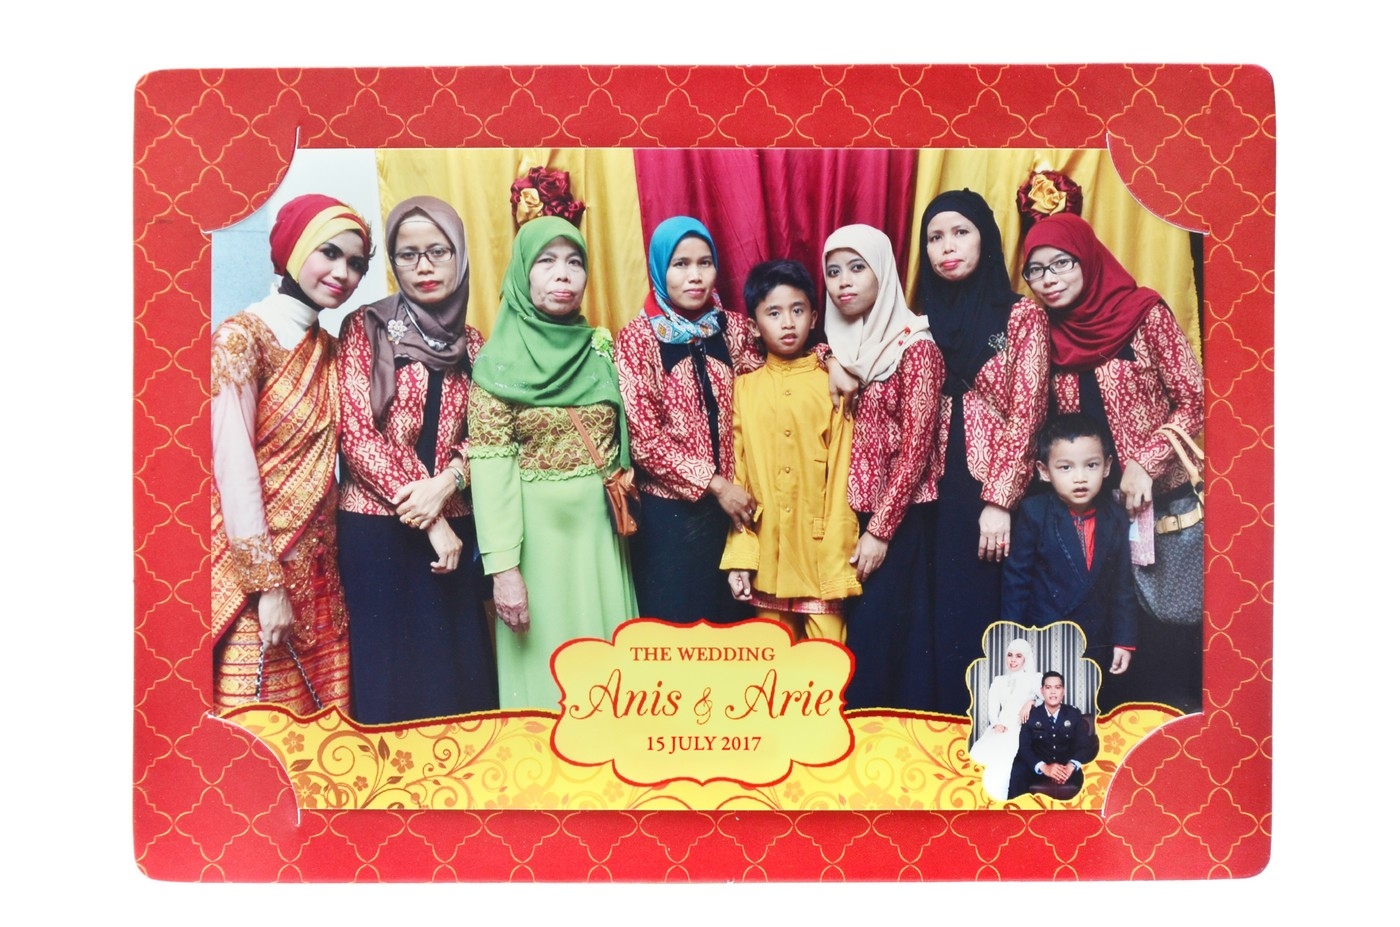 Sample - IRIS PhotoBooth Jasa Photo Booth Souvenir Jakarta ...